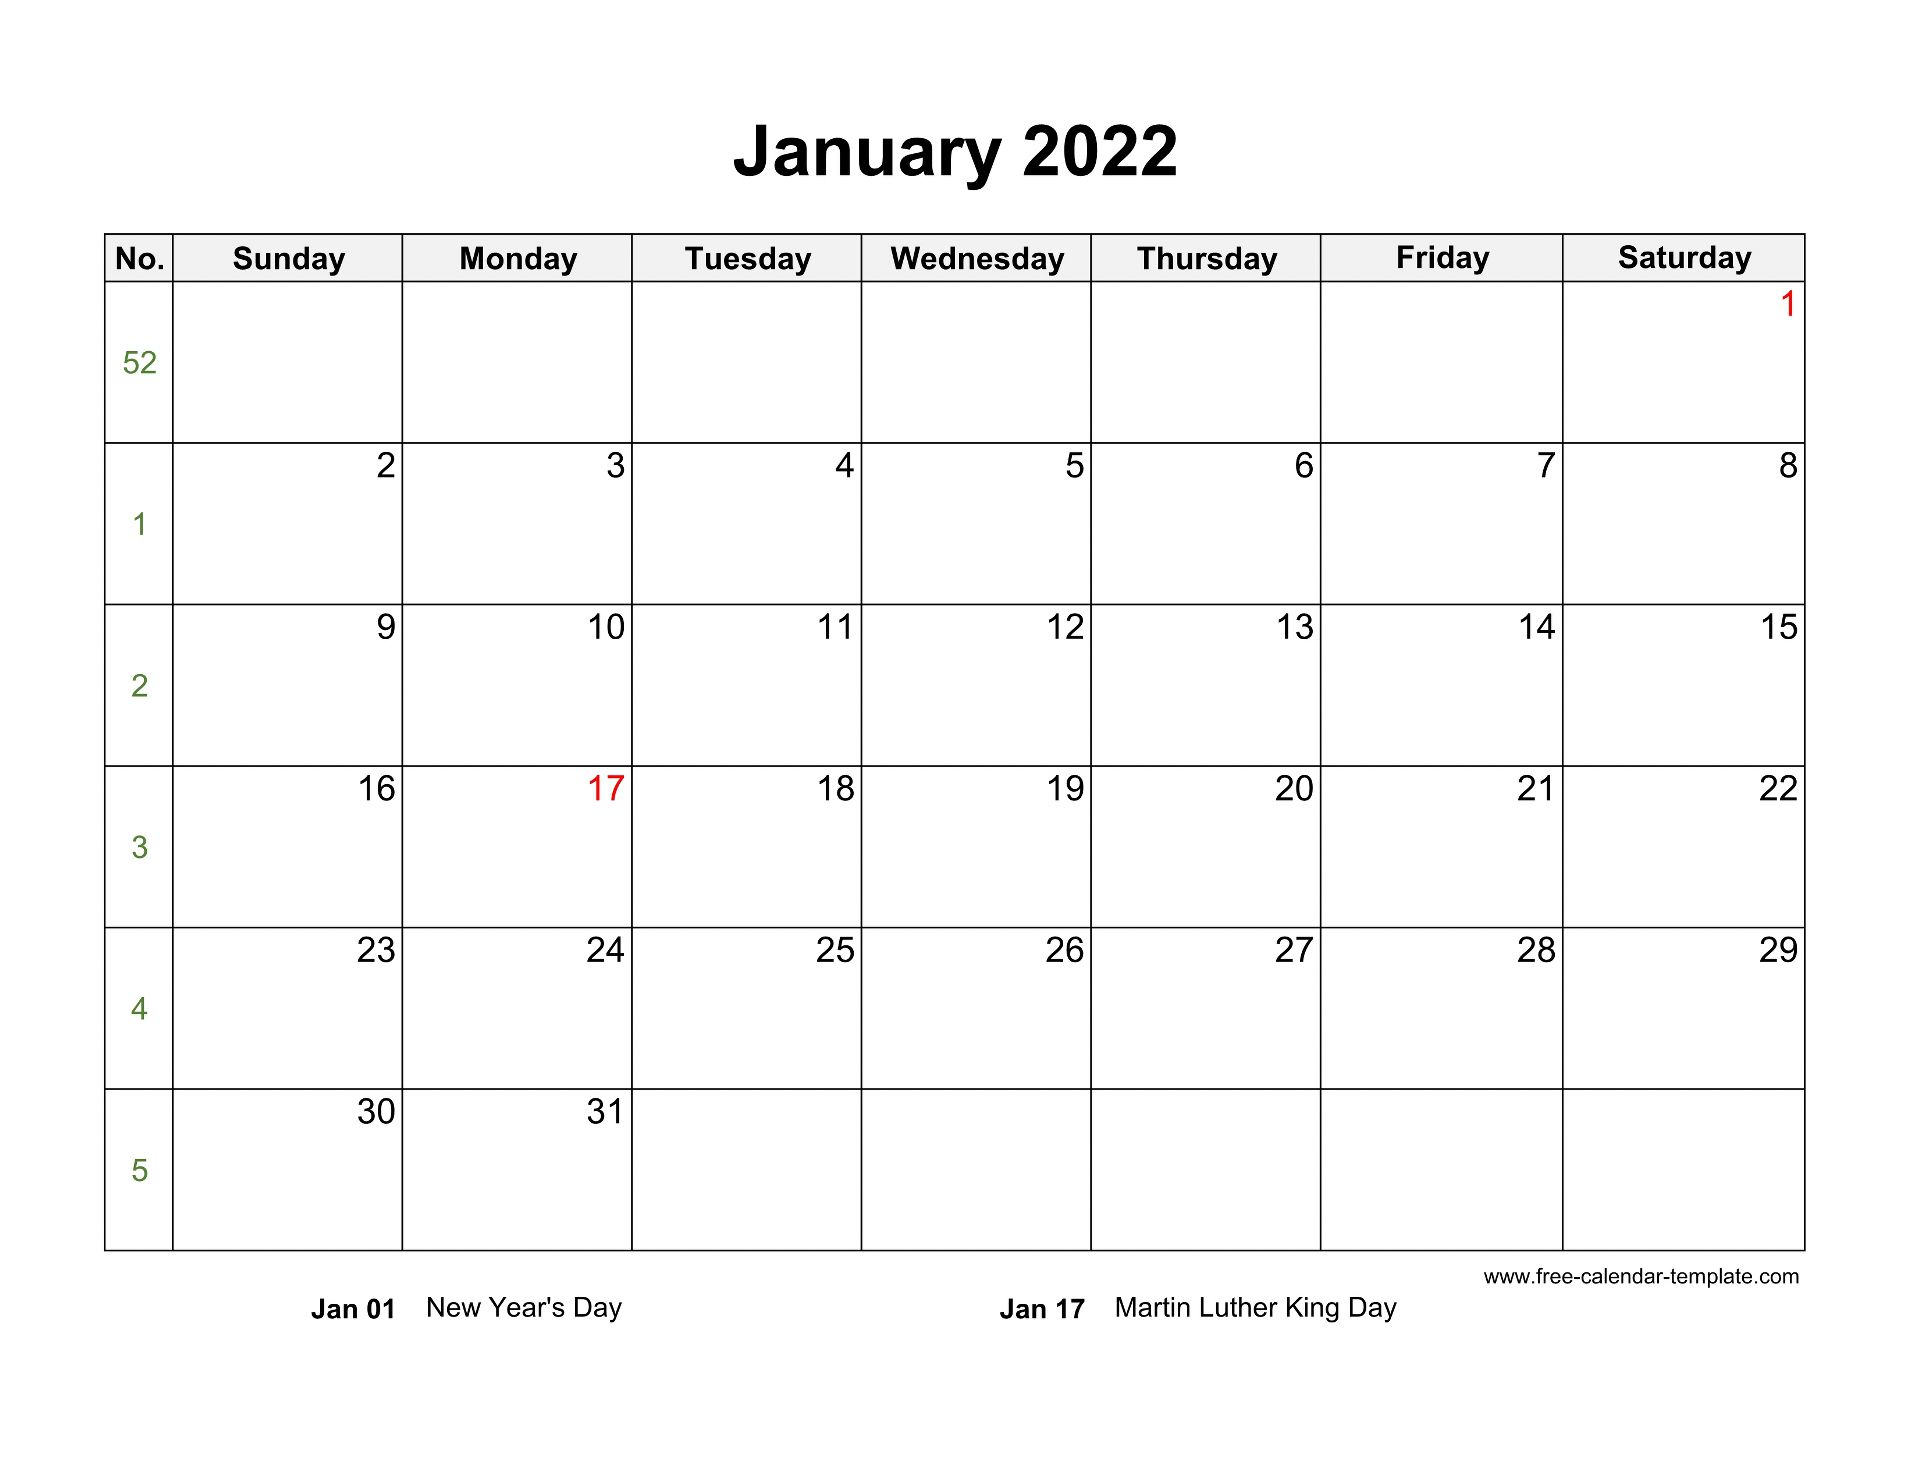 Download for free blank template february 2022 calendar in excel format, download schedule february 2022 calendar via google drive direct link. Free 2022 Calendar Blank Monthly Template (horizontal ...